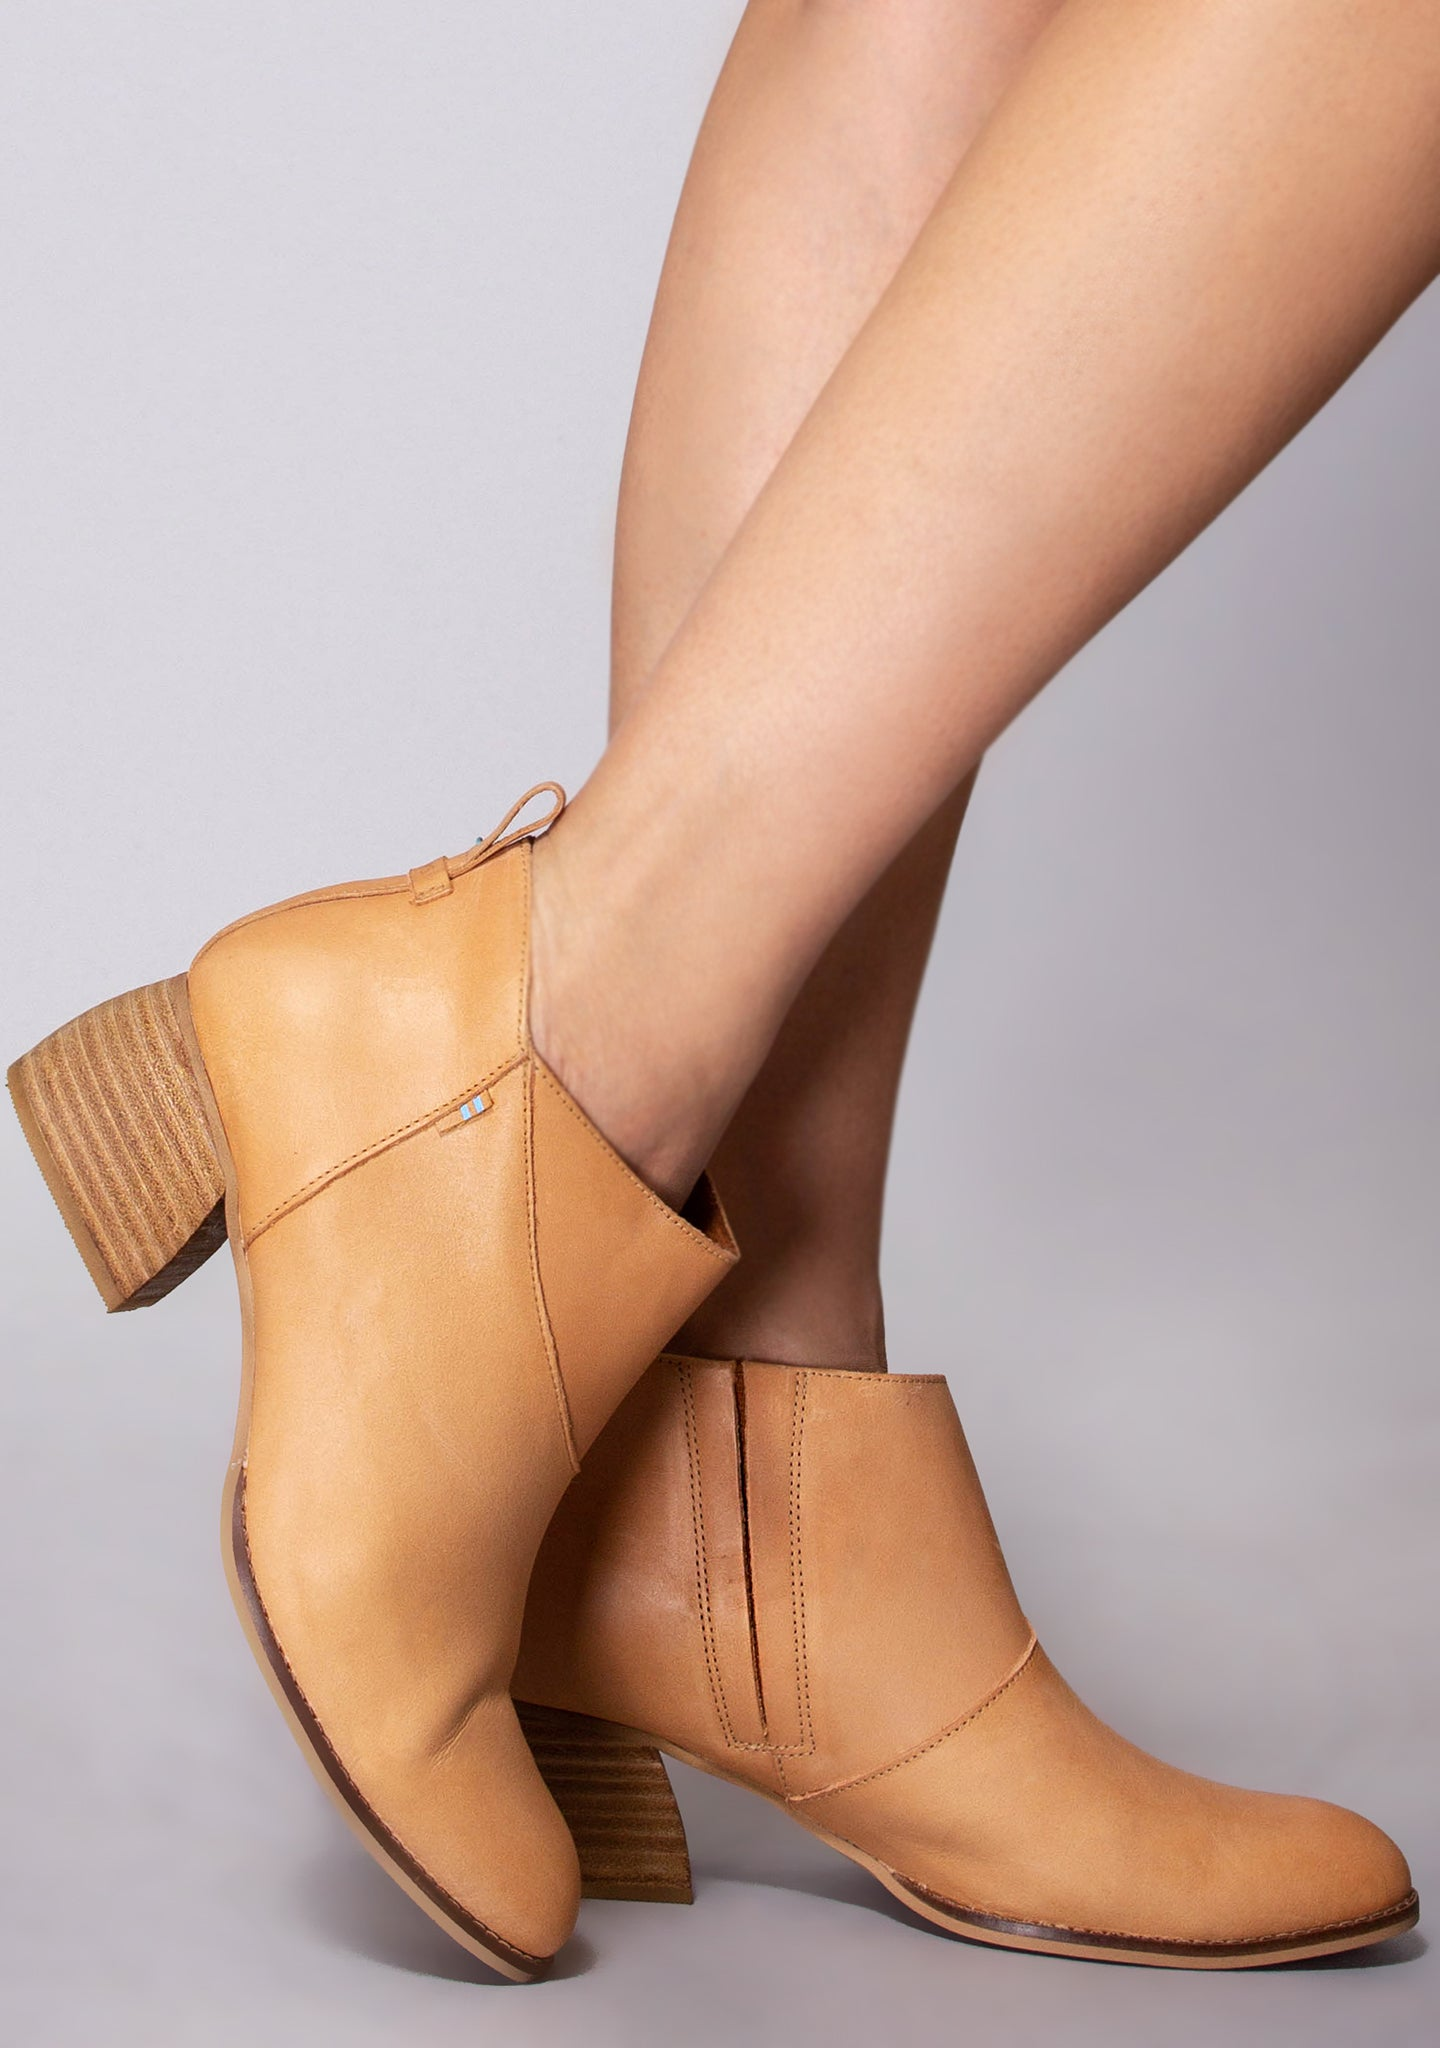 Leilani Leather Bootie in Honey